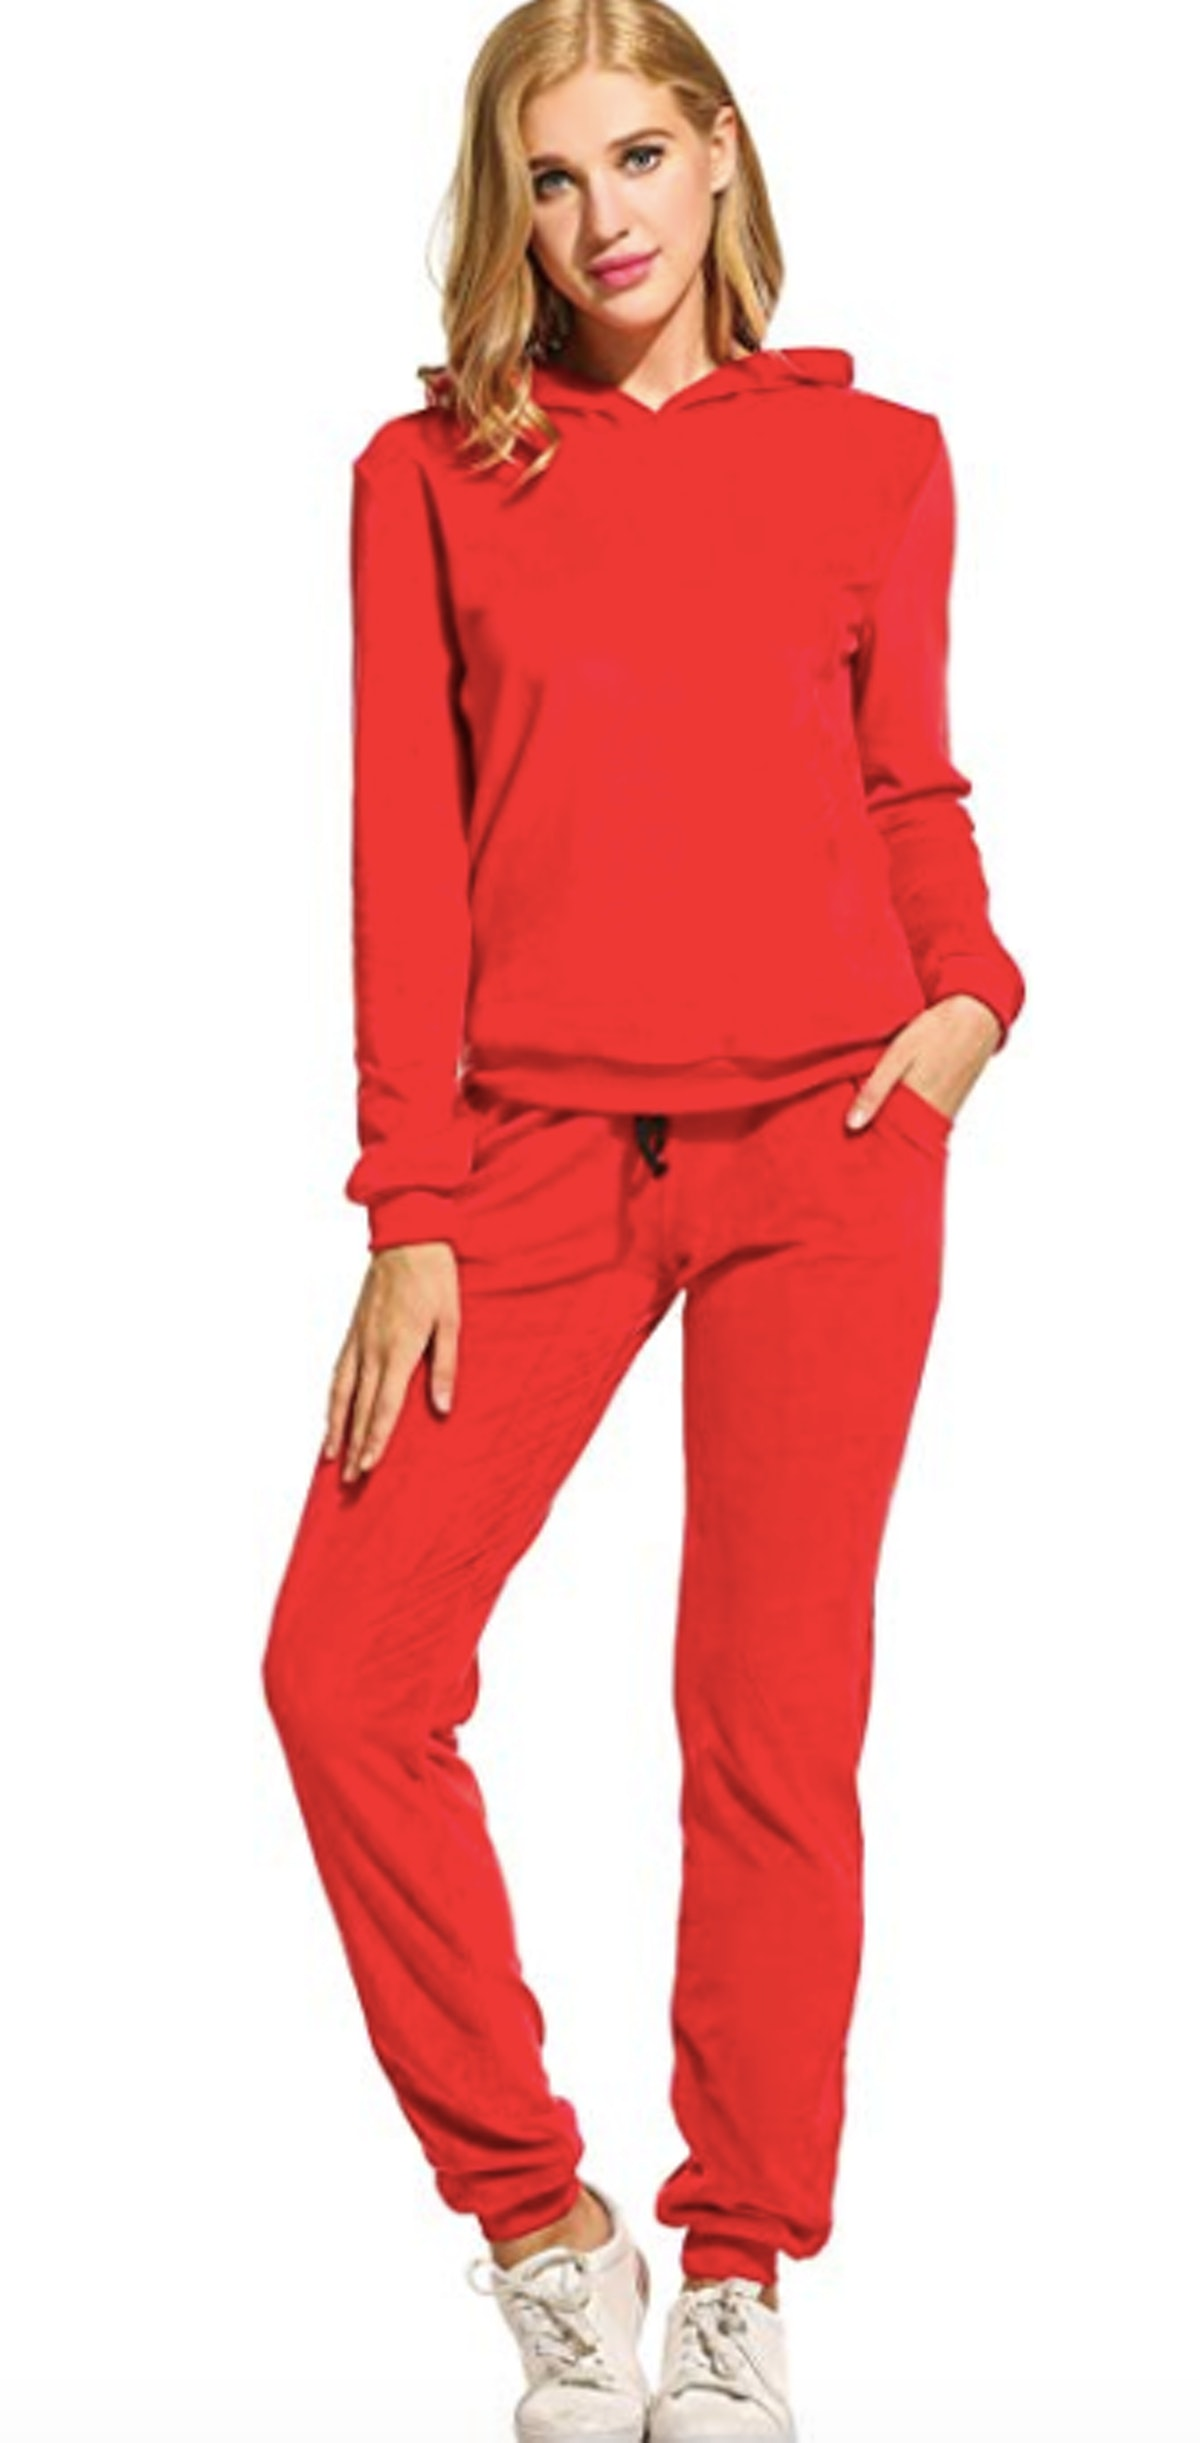 Hotouch Women's Solid Velour Sweatsuit Set Hoodie and Pants